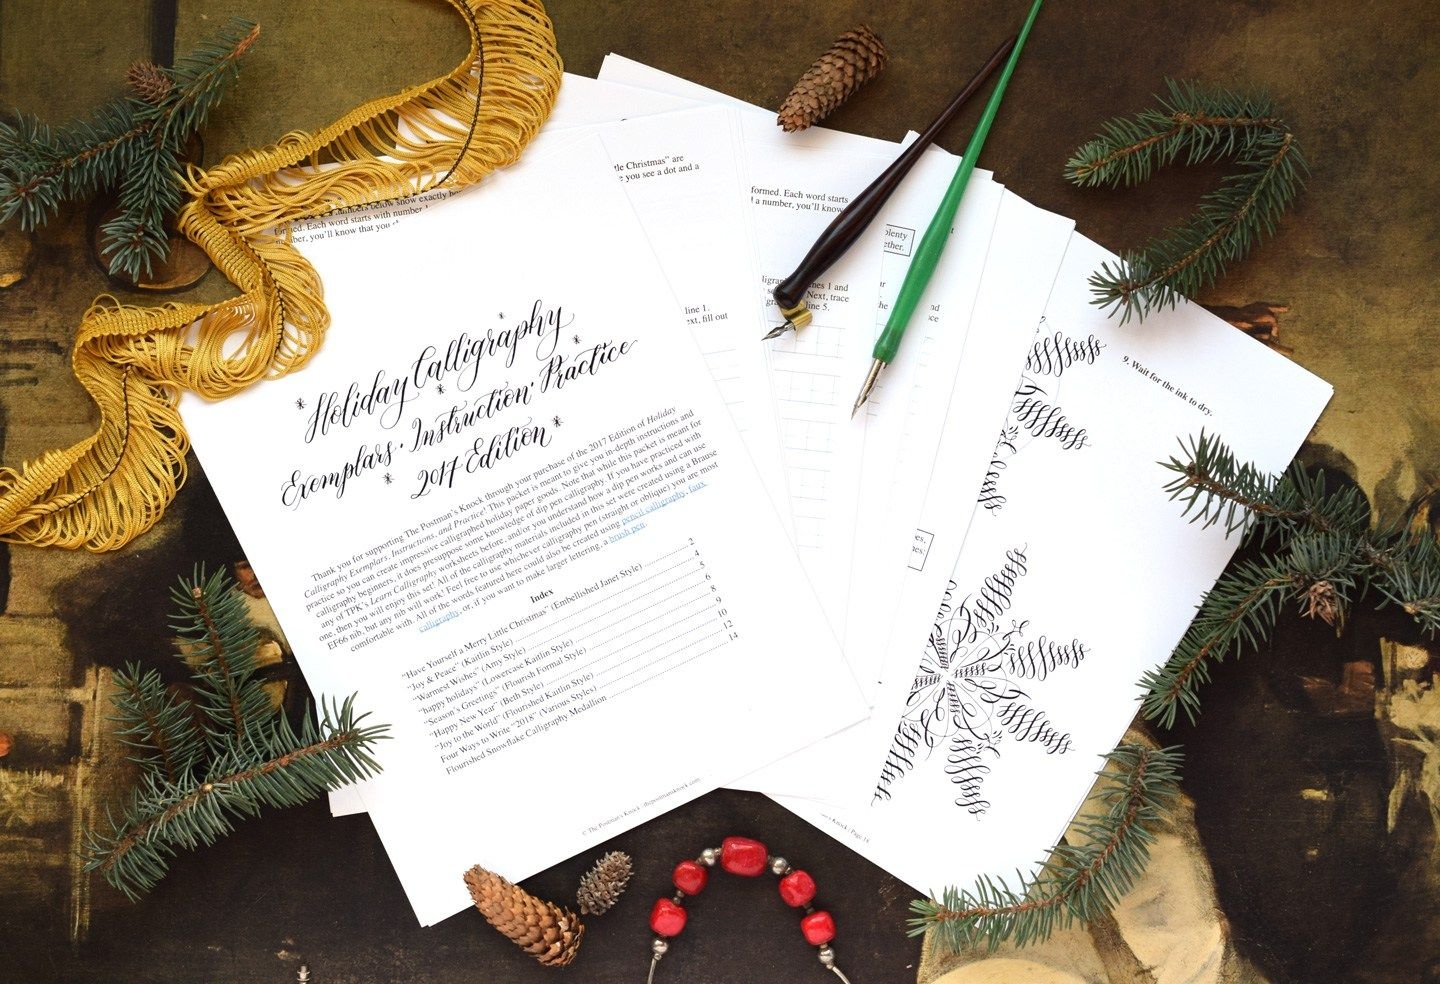 Edition Holiday Calligraphy Printable Exemplar